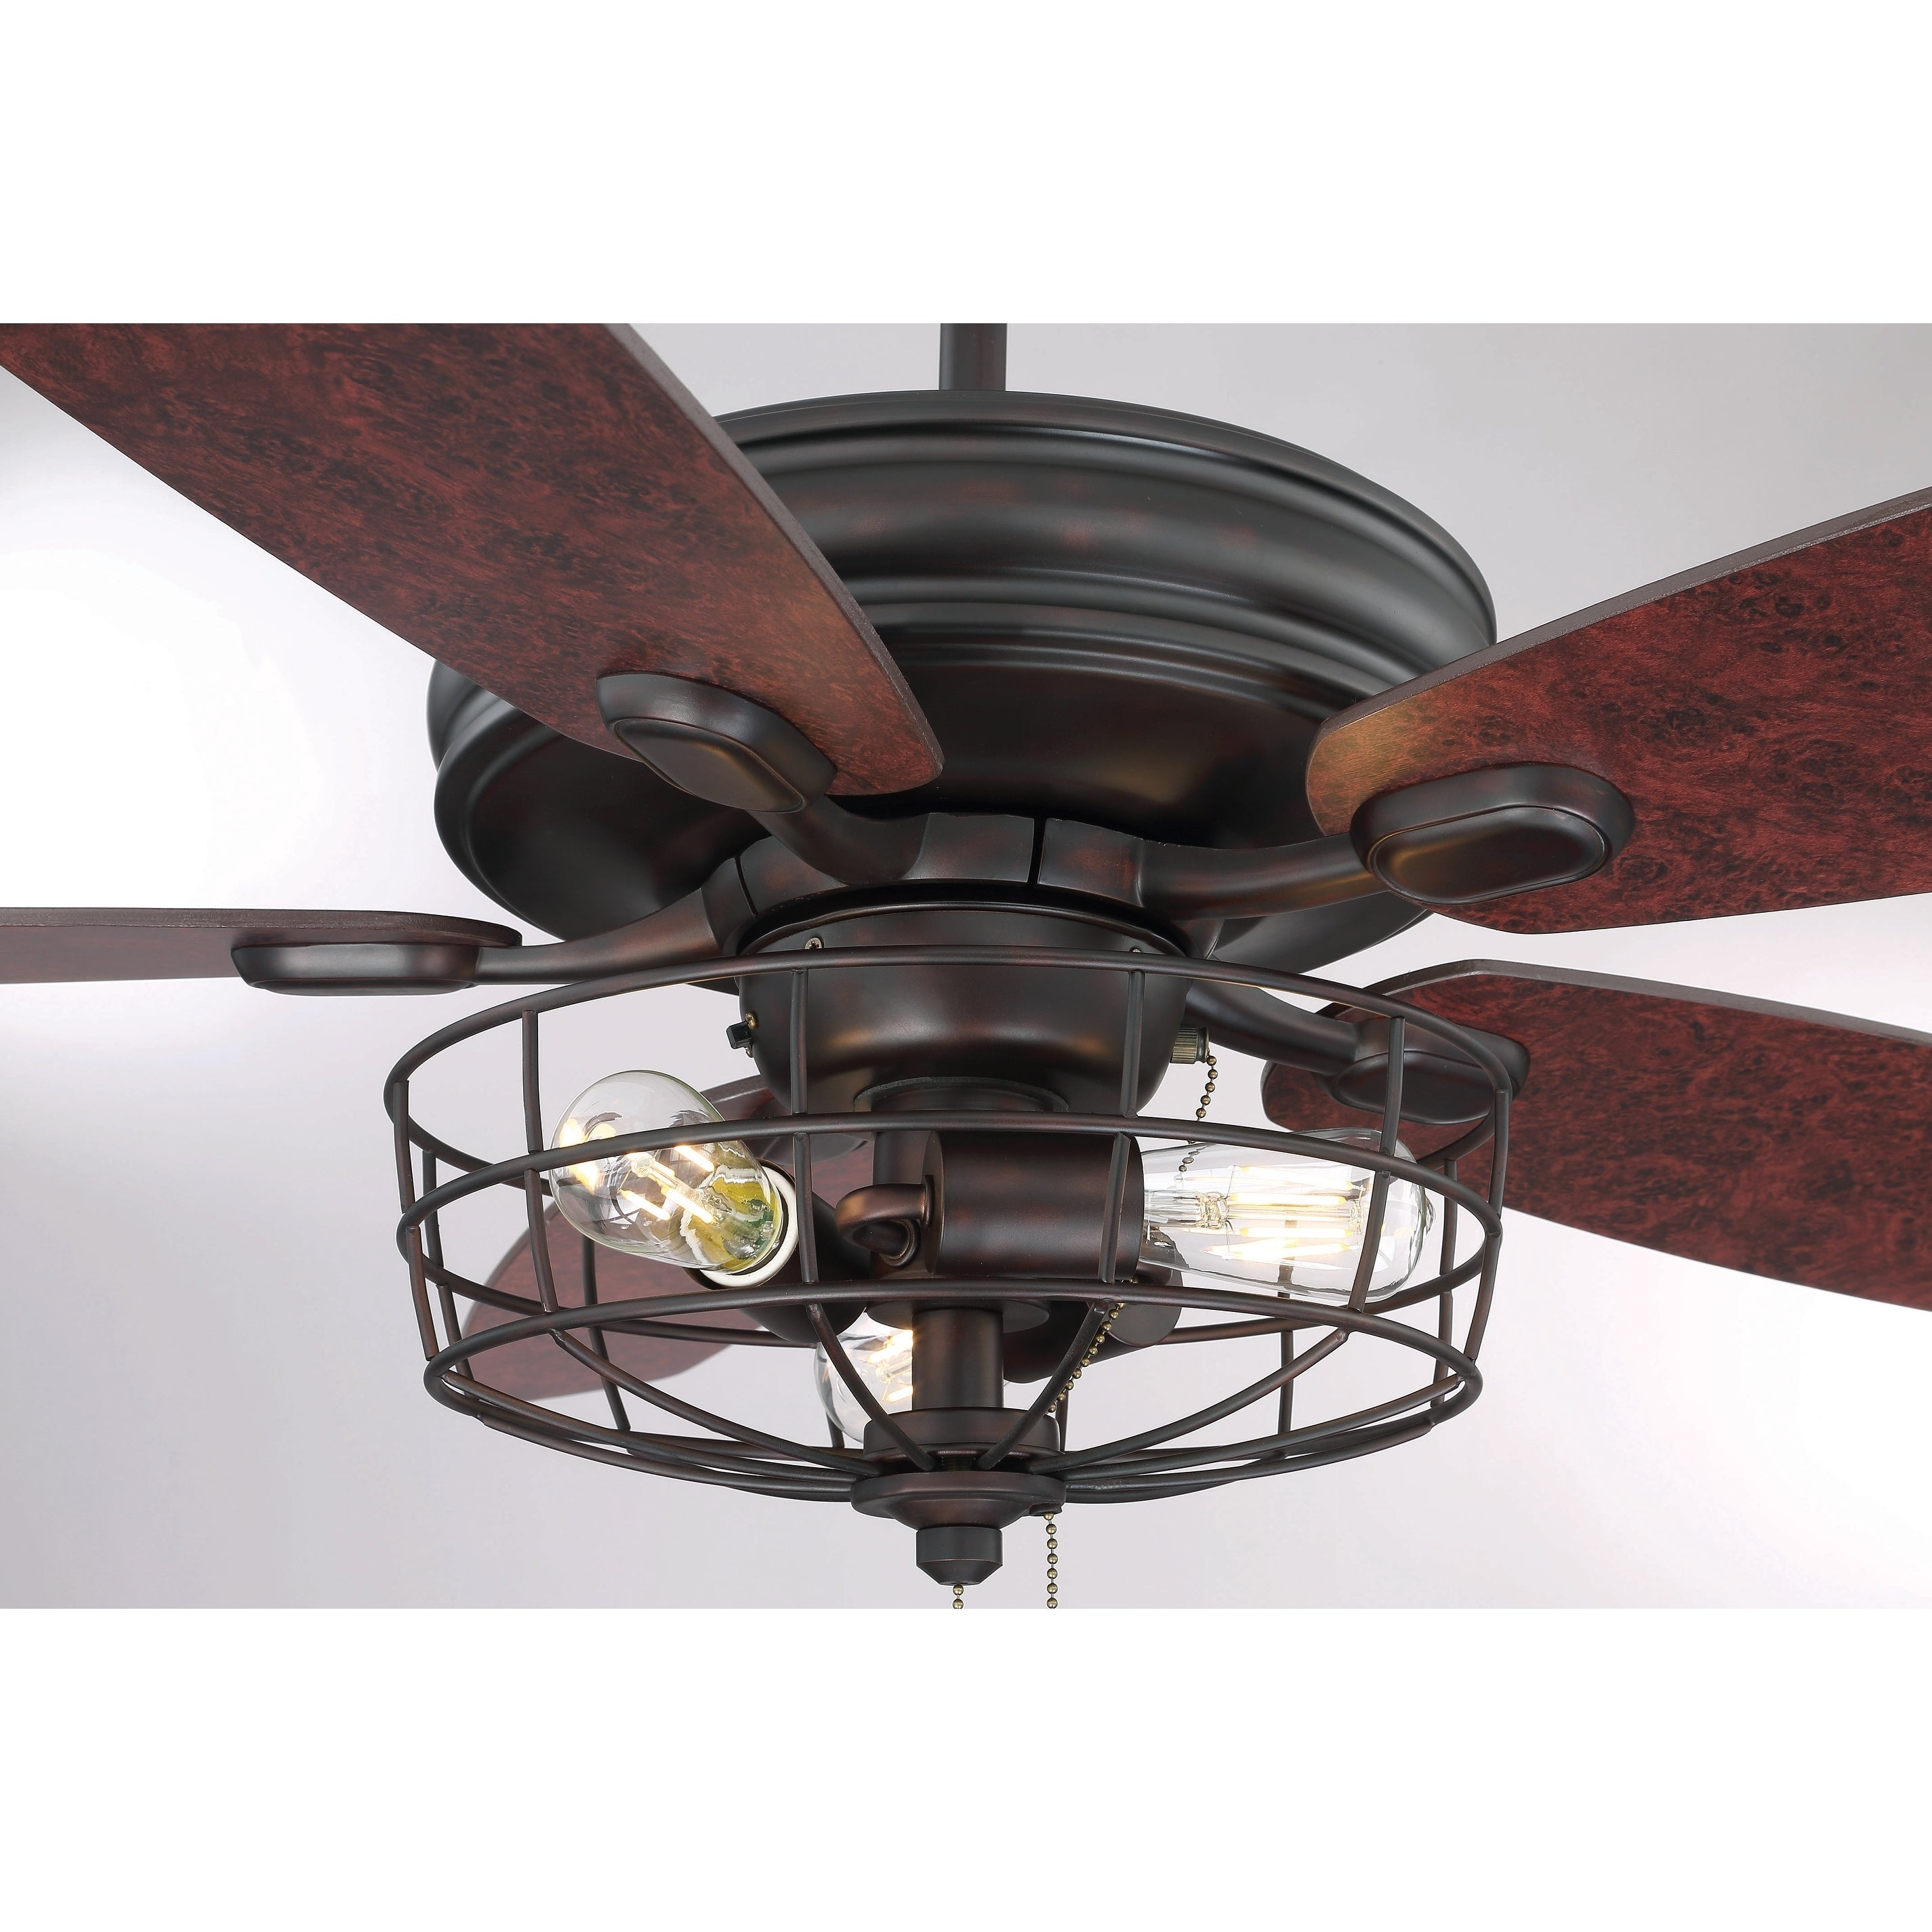 minkaaire wall charming rubbed oil and decor traditional light minka your with fan bronze twin home control ceiling ceilings for aire fans